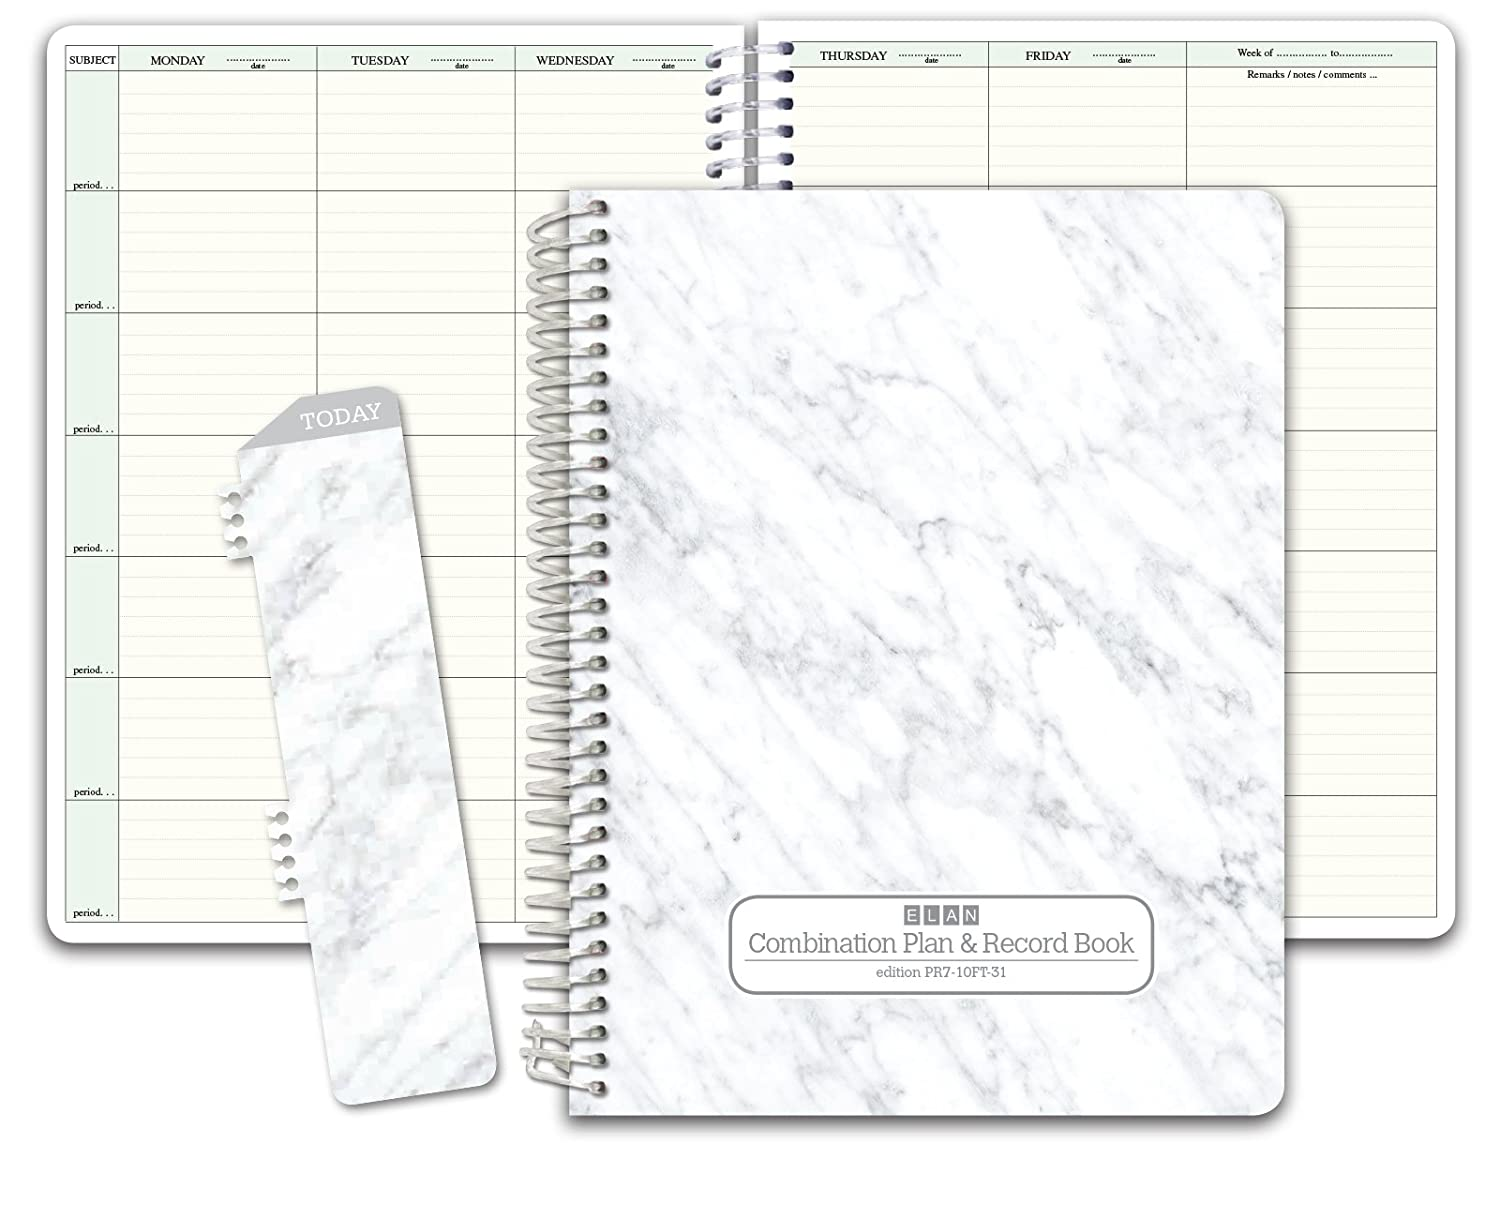 Combination Plan and Record Book: One Efficient 8.5 x 11 Book for Lesson Plans and Grades Combines W101 and R1010 (PR7-10) (+) Bonus Clip-in Bookmark (Grey Marble) Elan Publishing Company